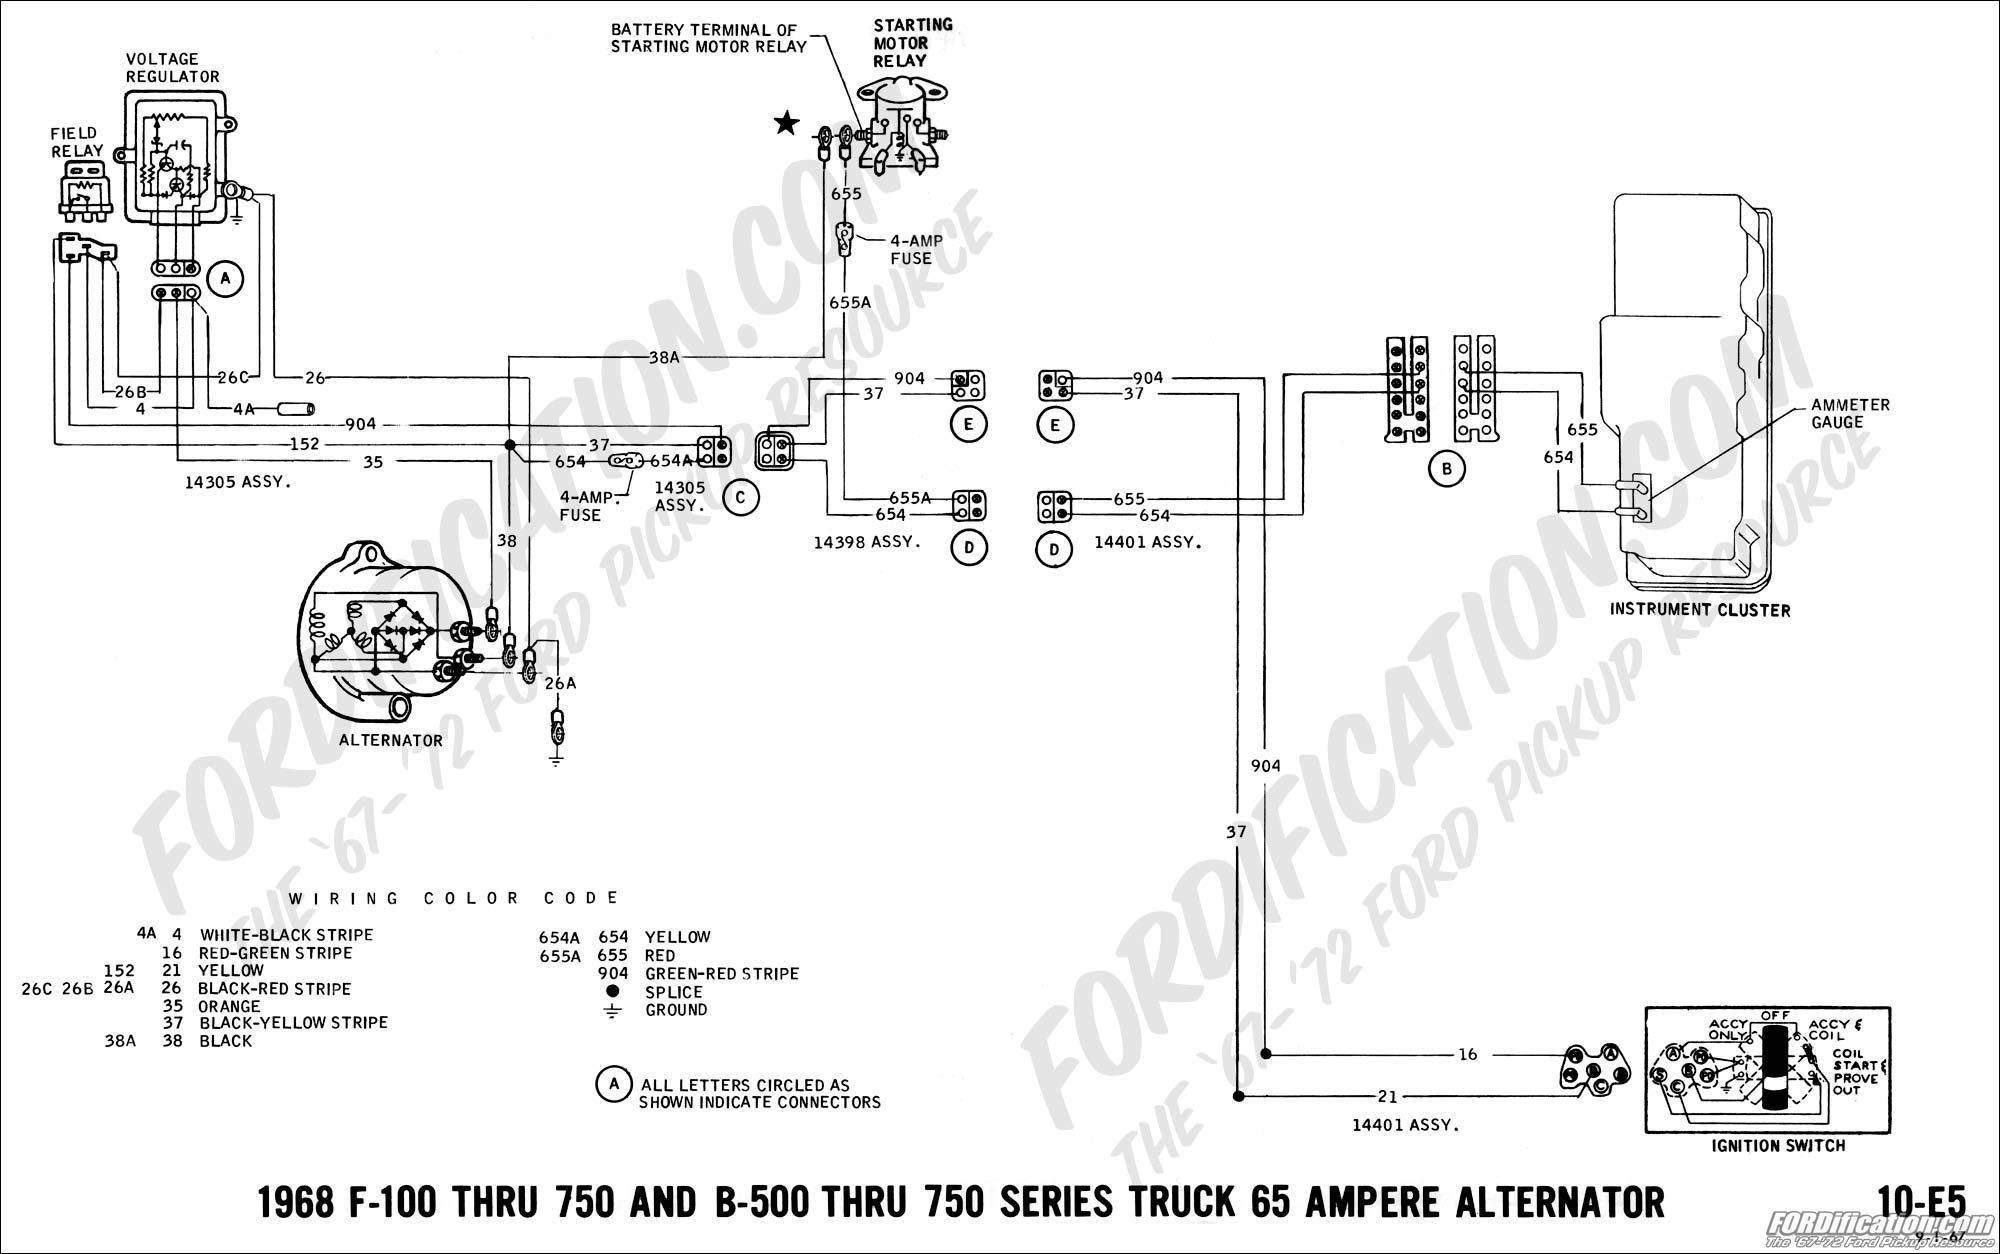 Alternator Wiring Diagram Internal Regulator Wiring Diagram for Alternator with Internal Regulator New Tractor Of Alternator Wiring Diagram Internal Regulator